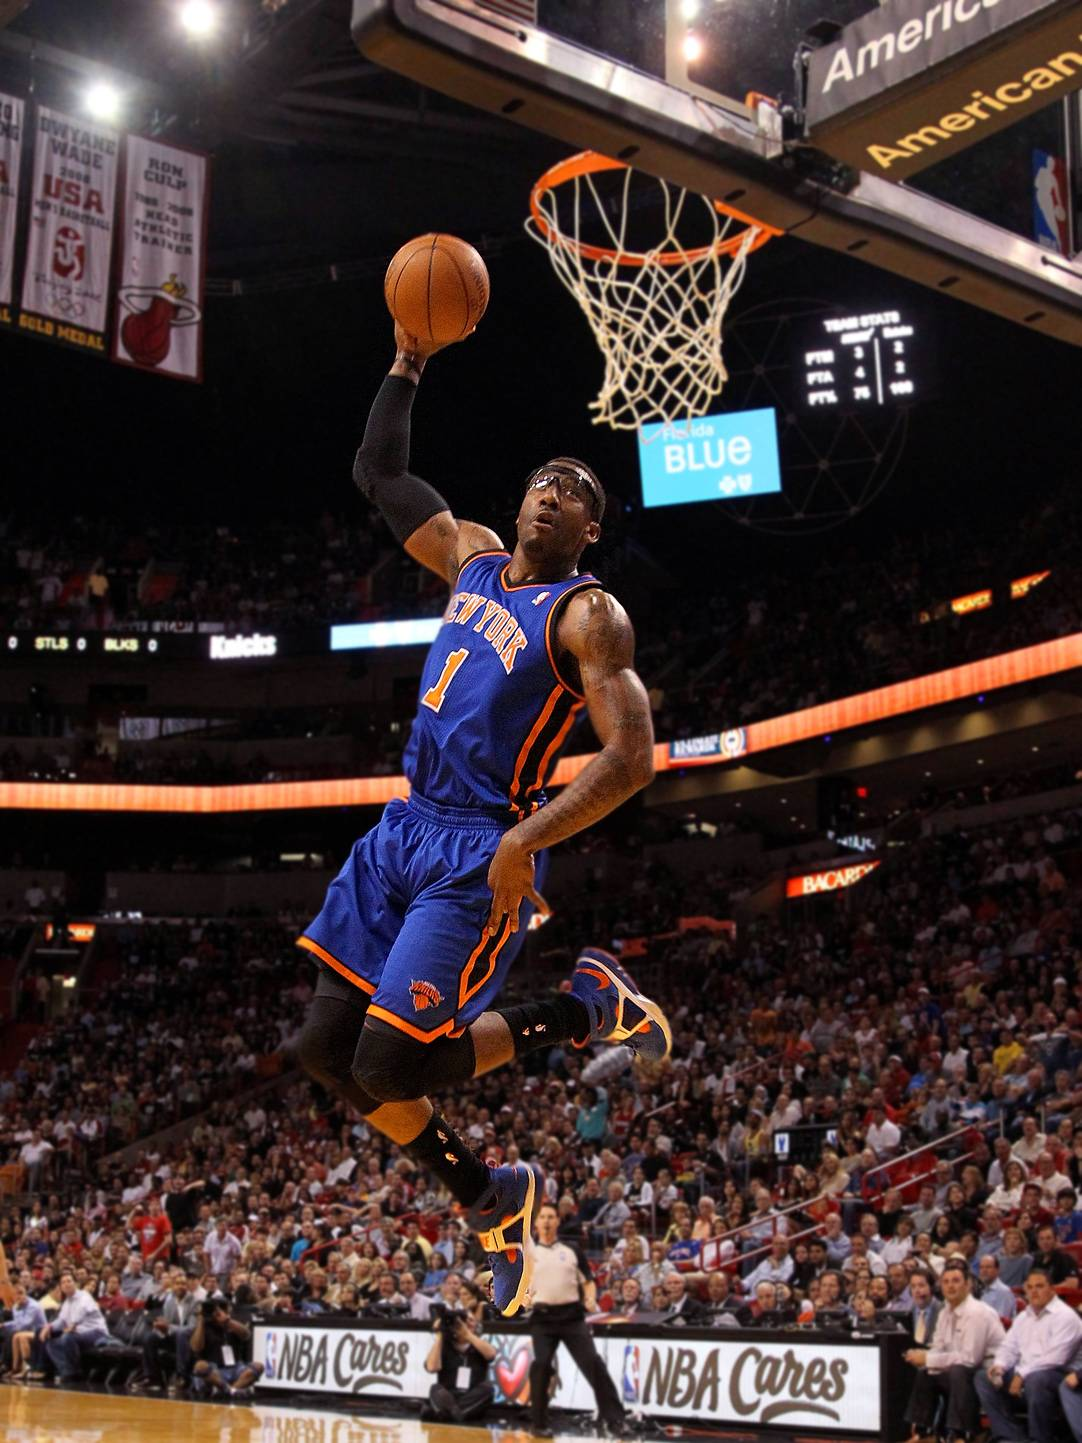 #6 Amar'e Stoudemire (Tie) - Amar'e Stoudemire made a total of $26.2 million this past season.  The newly engaged star of the New York Knicks signed a five-year, $100 million deal with the team in 2010. The rest of this past season?s earnings came from a five-year endorsement with Nike signed last summer.(Photo: Mike Ehrmann/Getty Images)